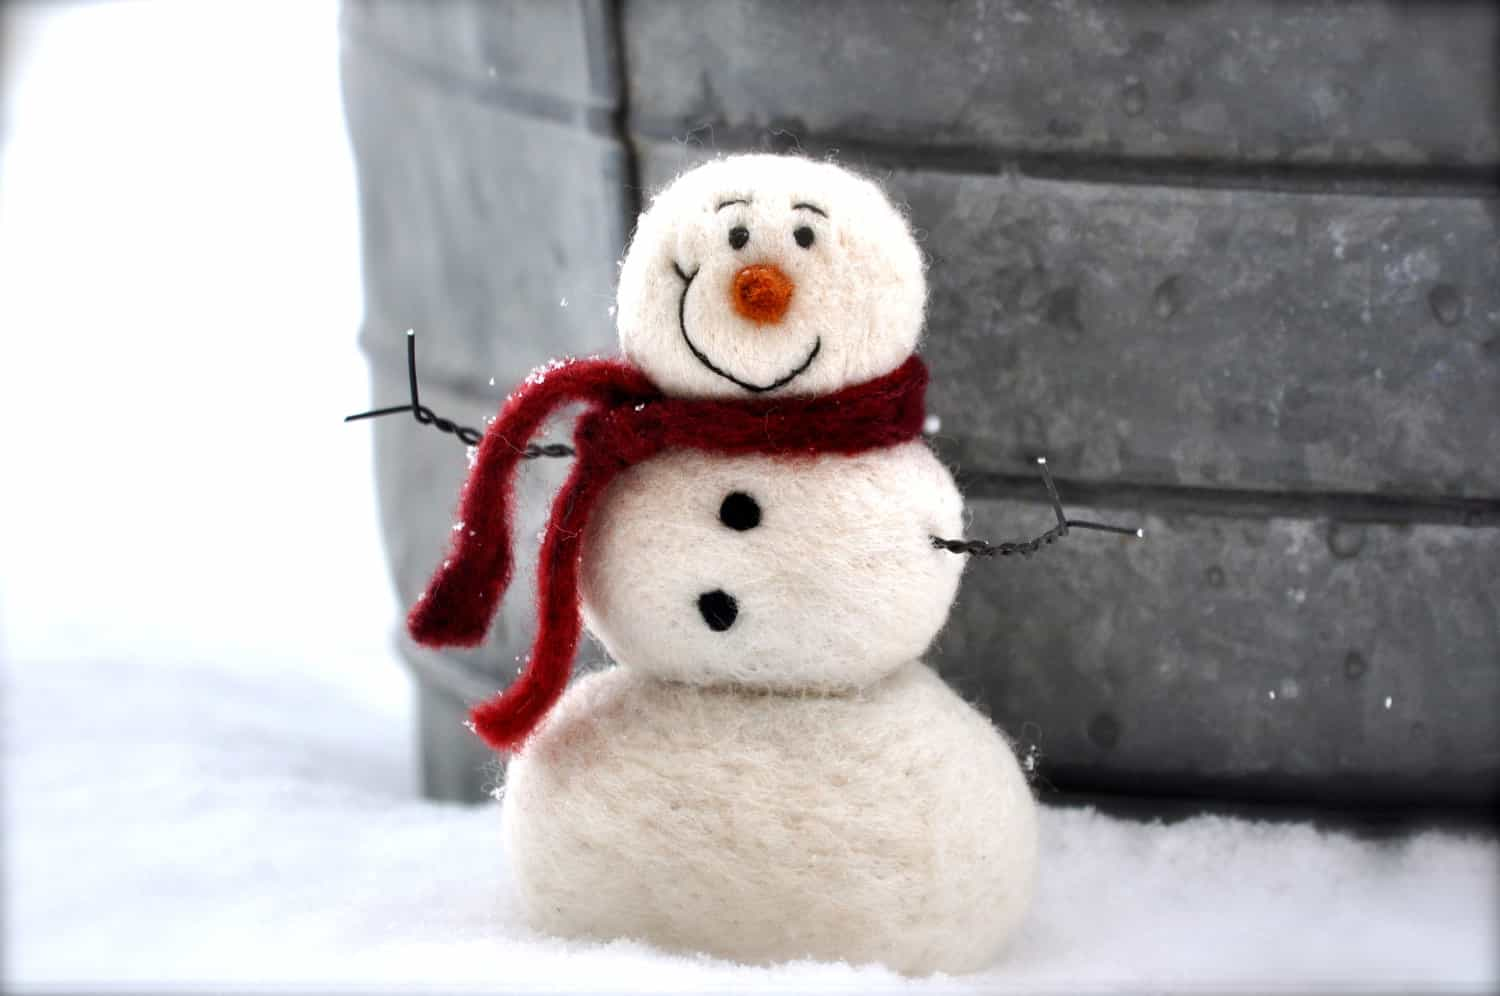 Cute needle felted snowman